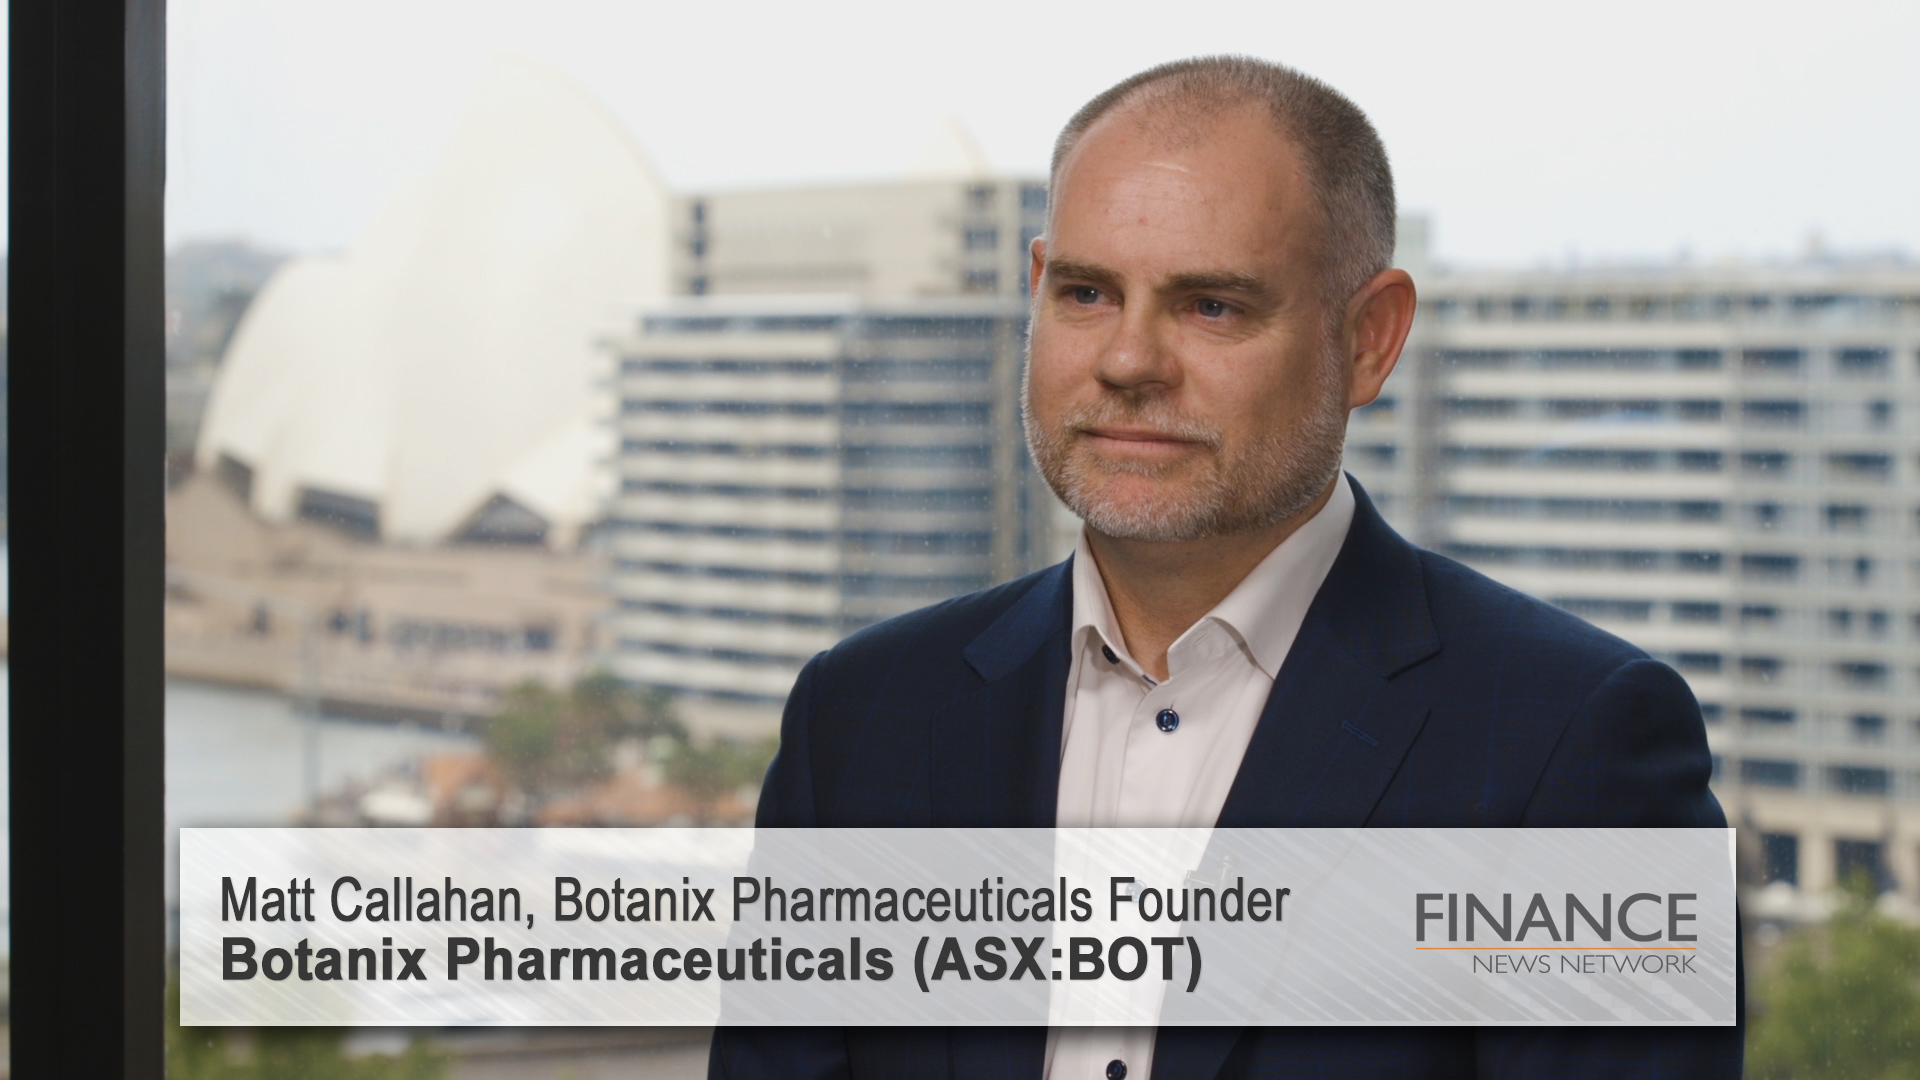 Botanix Pharmaceuticals (ASX:BOT) clinical trial update